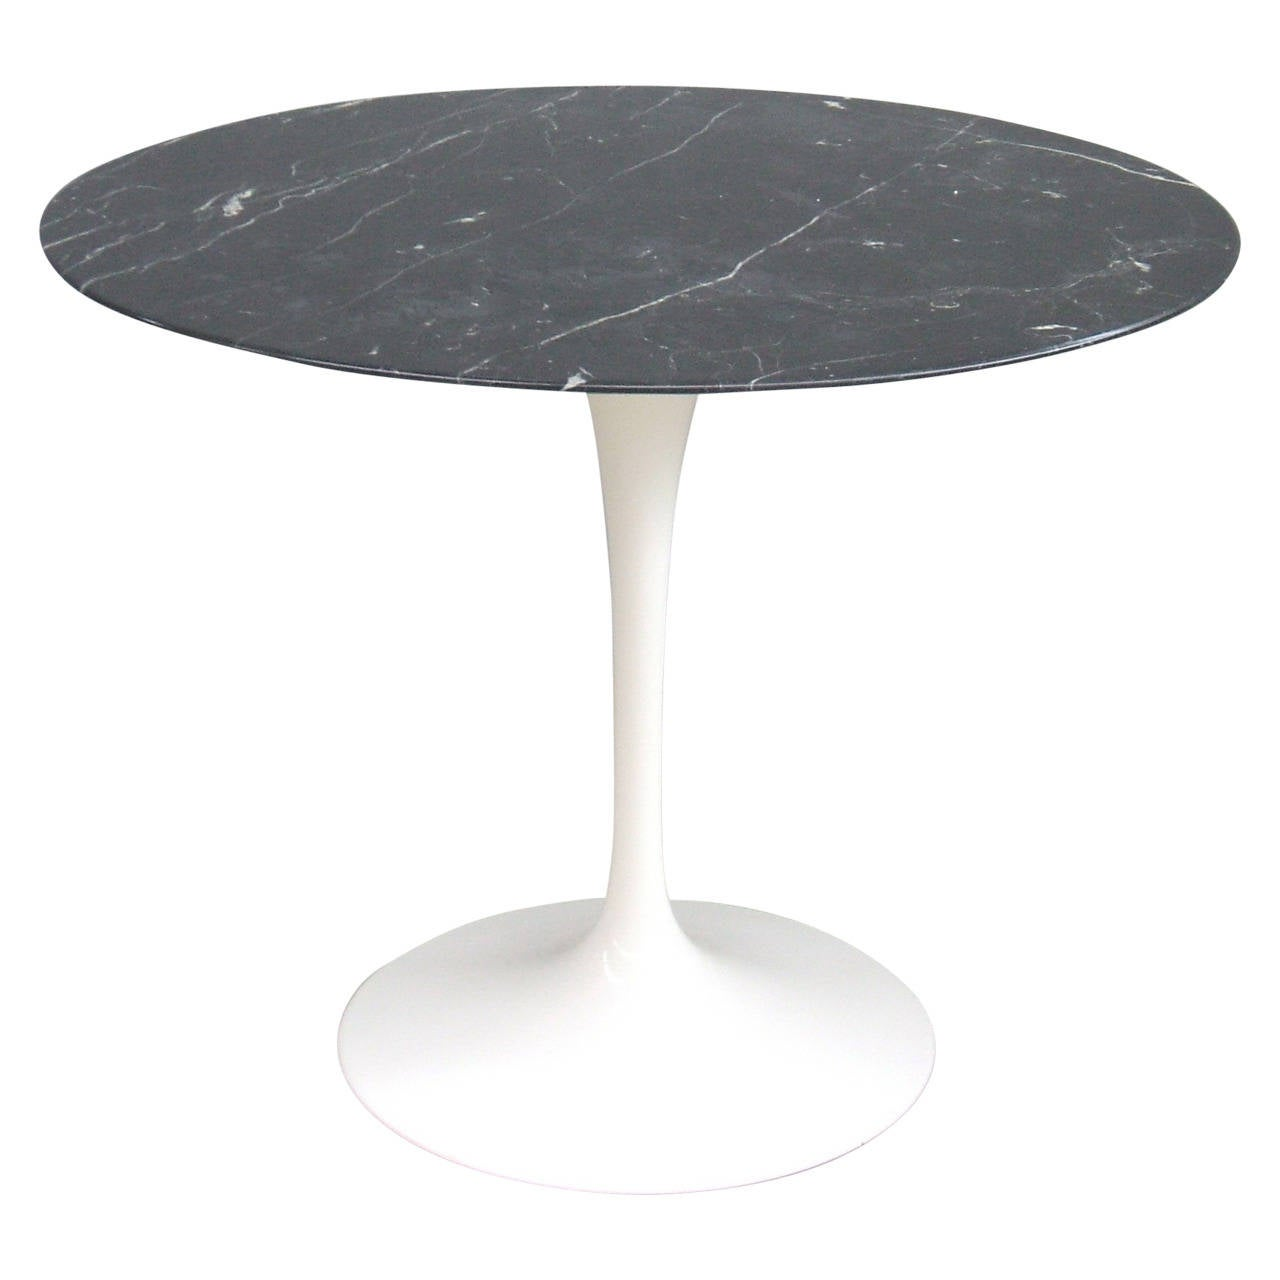 Marble Top Tulip Table By Eero Saarinen For Knoll